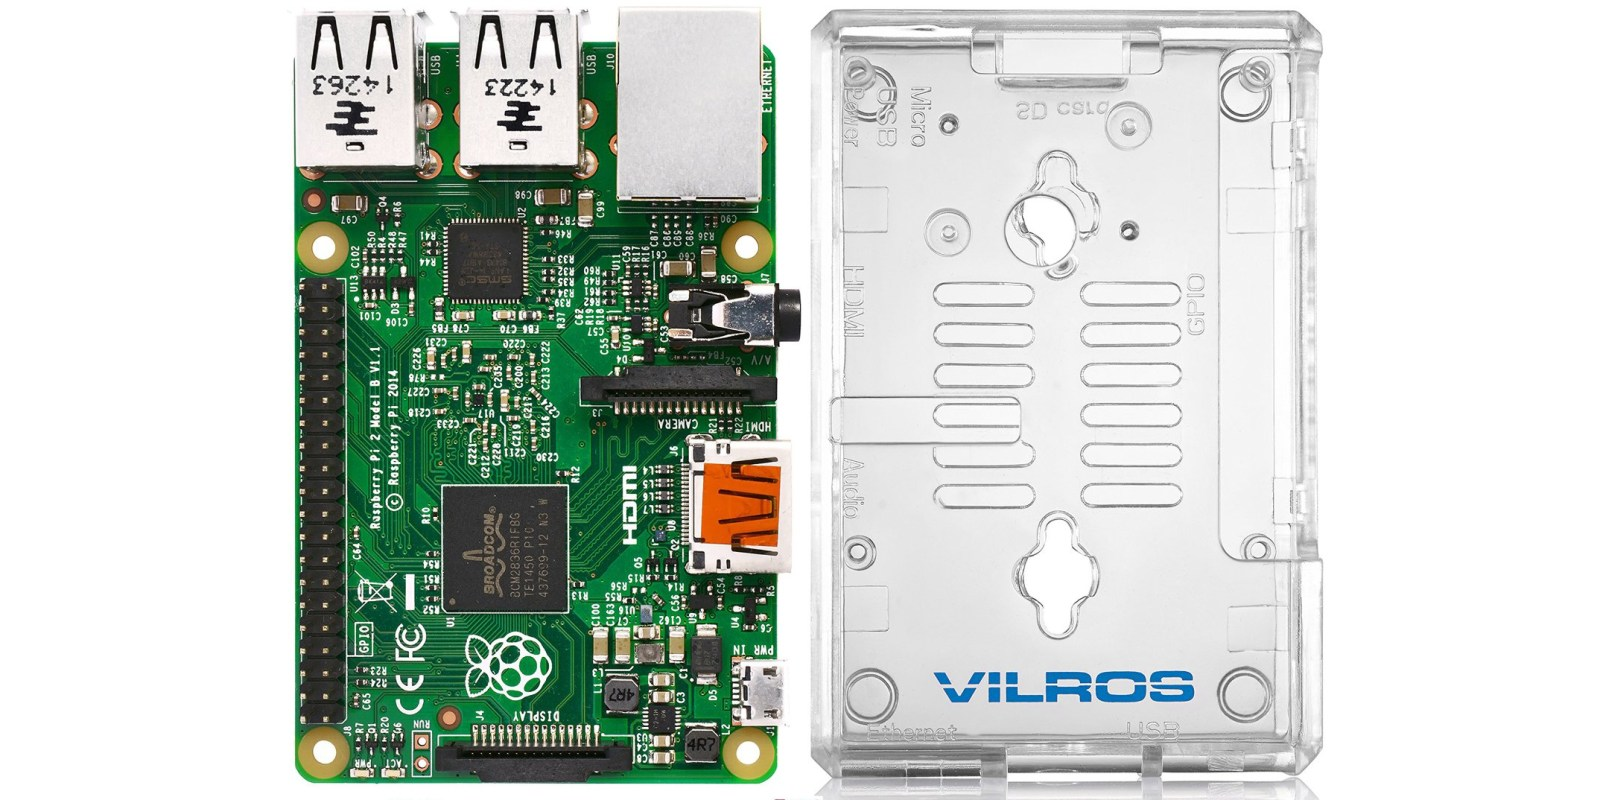 Get a Raspberry Pi 2 Model B w/ a clear case for $34 Prime shipped ($49 value)